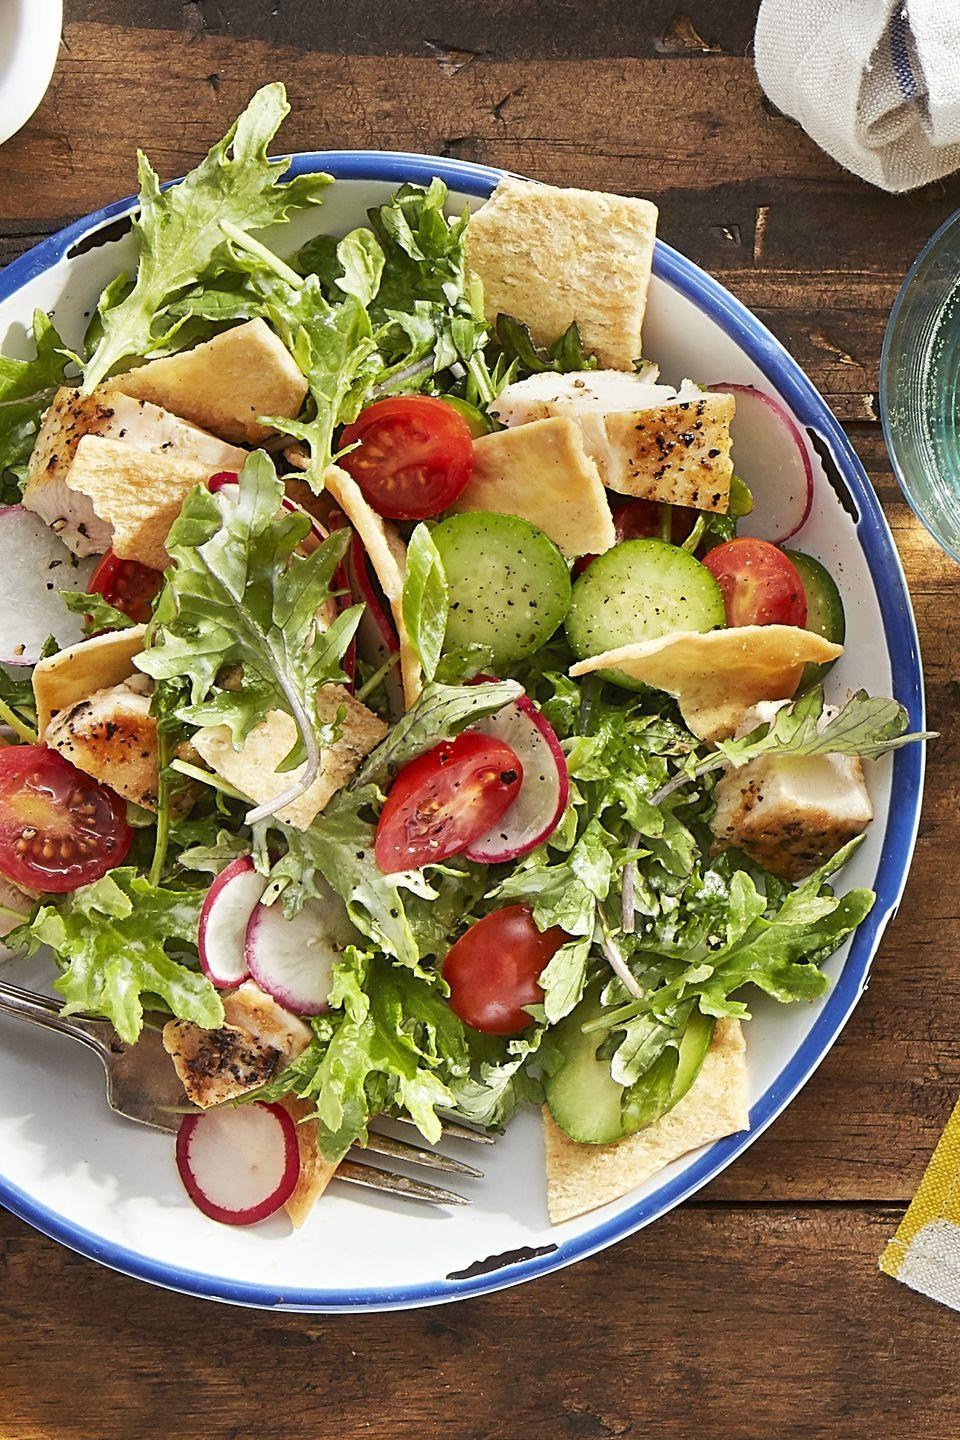 "<p>Pita chips and slice radishes give this Mediterranean-inspired salad some crunch.</p><p><strong><a href=""https://www.countryliving.com/food-drinks/recipes/a44243/kale-chicken-pita-salad-recipe/"" rel=""nofollow noopener"" target=""_blank"" data-ylk=""slk:Get the recipe"" class=""link rapid-noclick-resp"">Get the recipe</a>.</strong></p><p><a class=""link rapid-noclick-resp"" href=""https://www.amazon.com/dp/B07GC9S4VQ/?tag=syn-yahoo-20&ascsubtag=%5Bartid%7C10050.g.3626%5Bsrc%7Cyahoo-us"" rel=""nofollow noopener"" target=""_blank"" data-ylk=""slk:SHOP SALAD DRESSING SHAKERS"">SHOP SALAD DRESSING SHAKERS</a></p>"